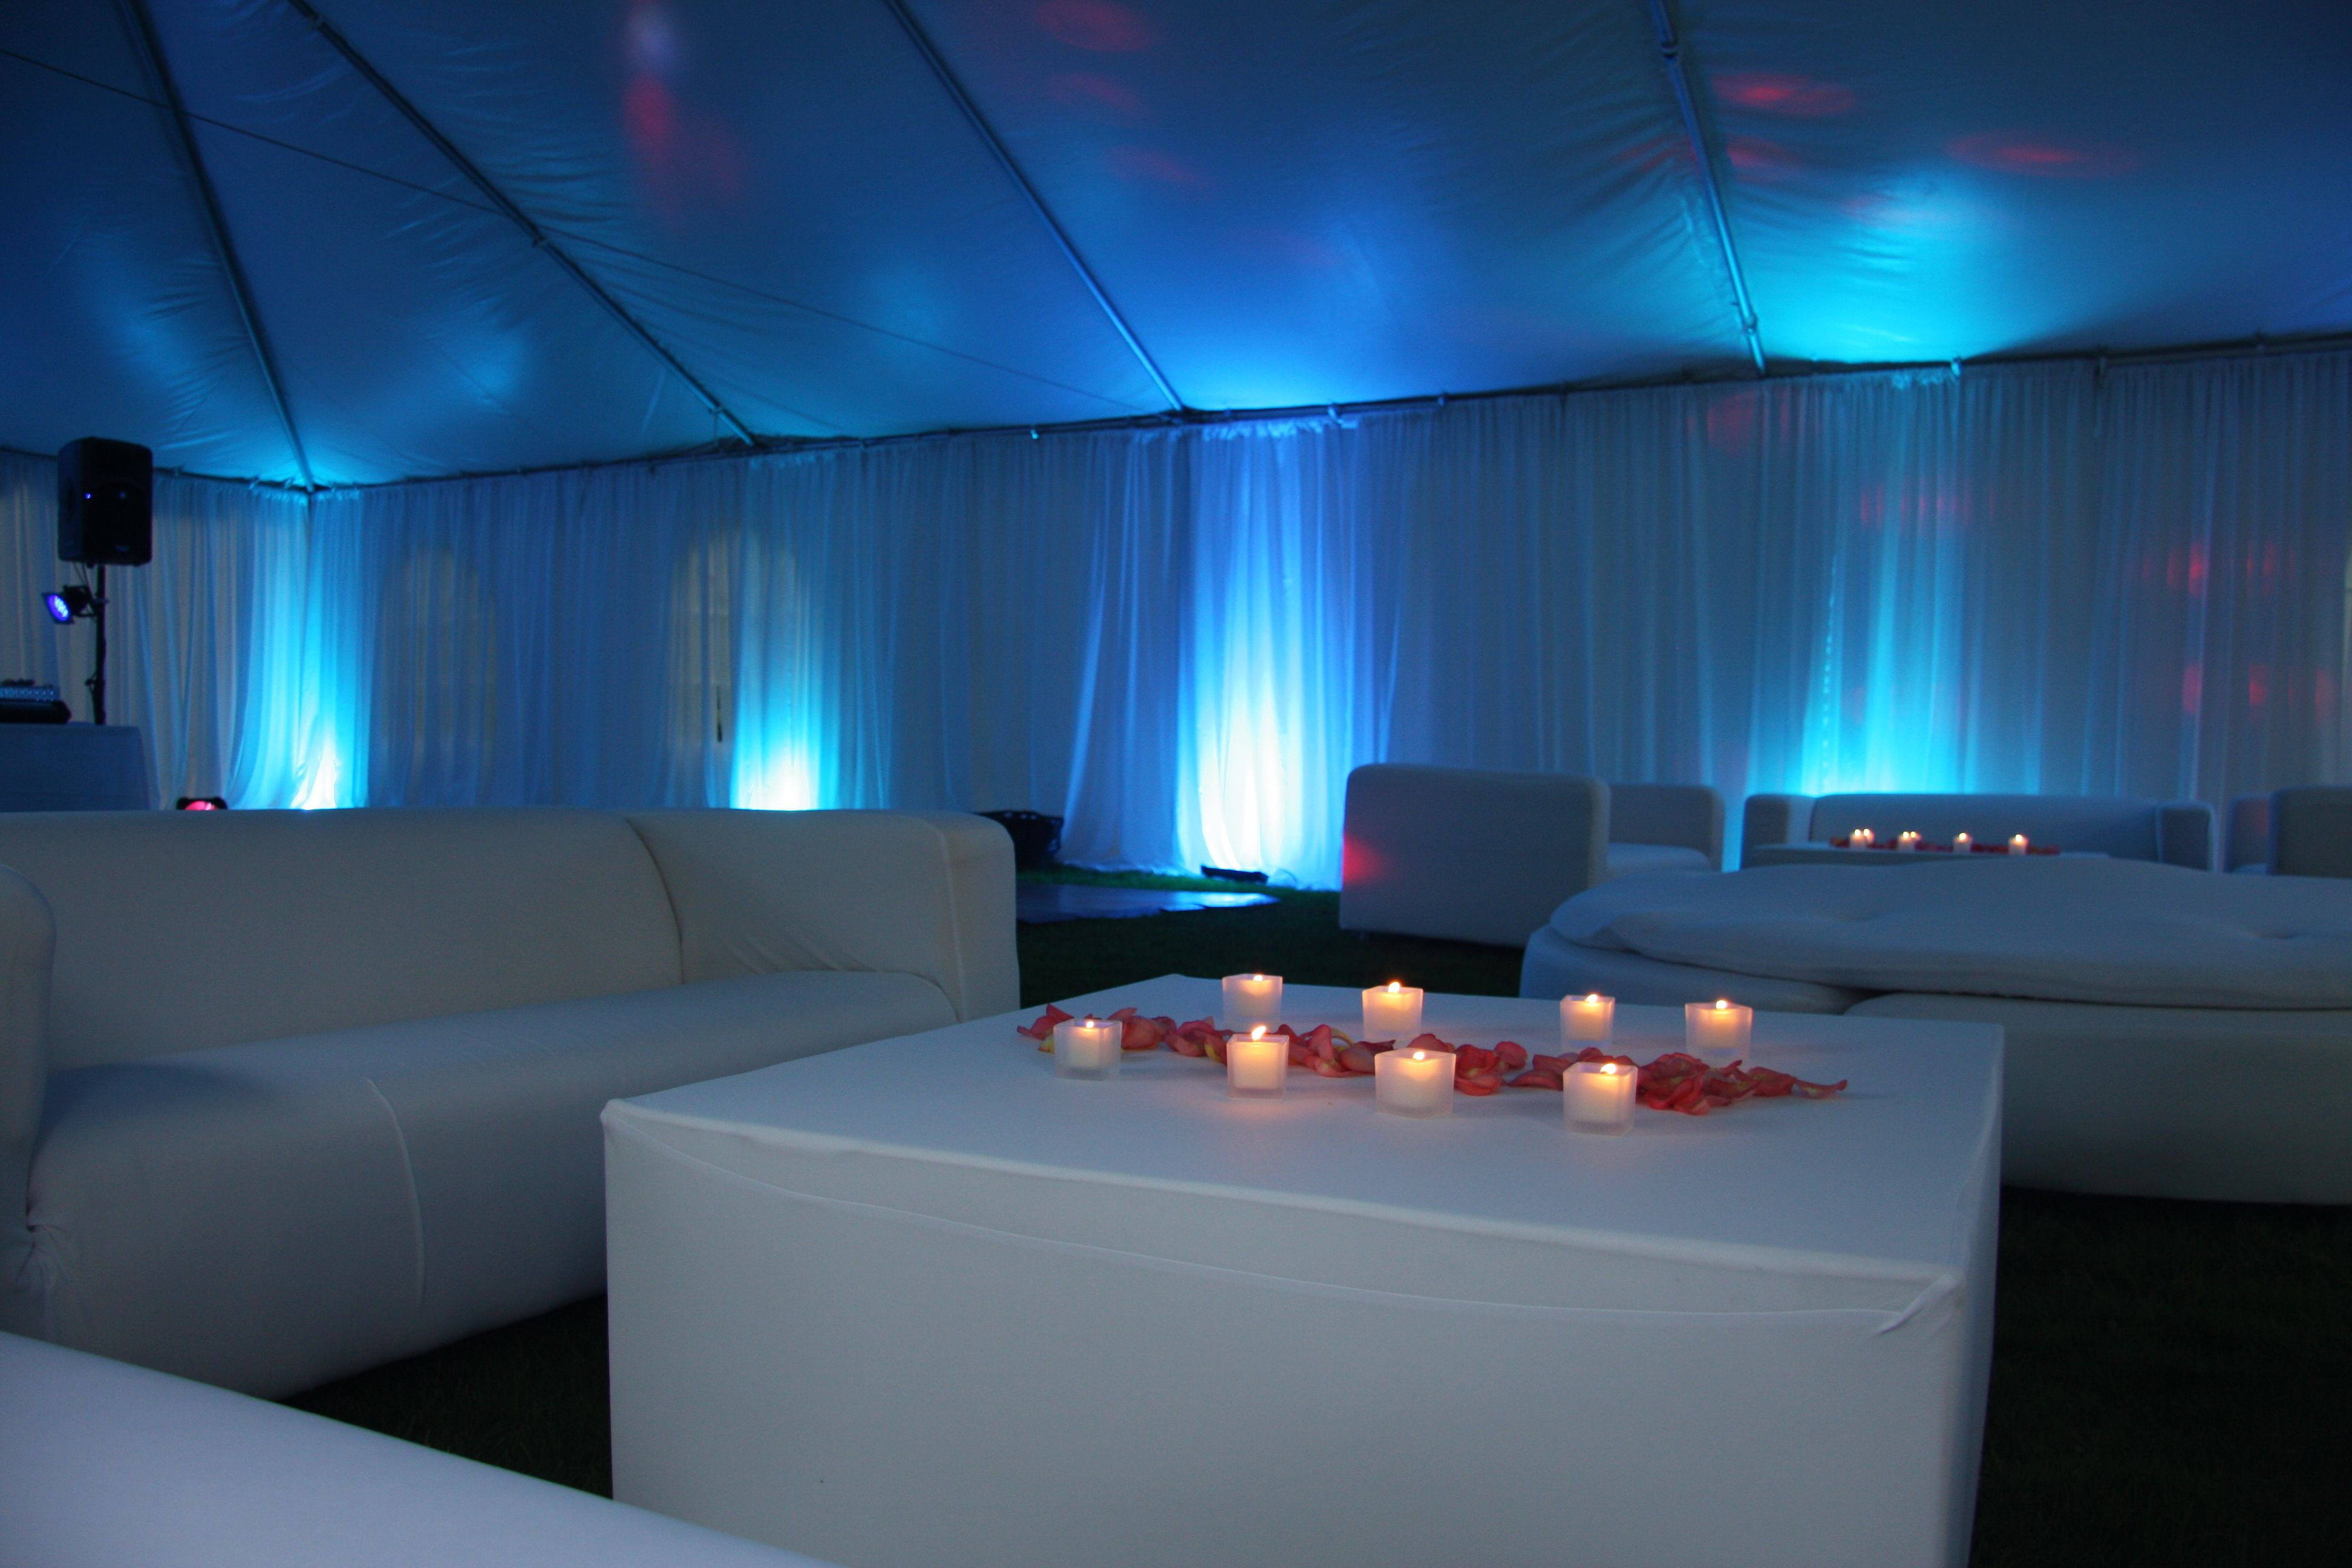 Atlanta Rental Uplighting Vip Lounge After Party Cheap Office Chairs Rental Decorating Arm Chairs Living Room